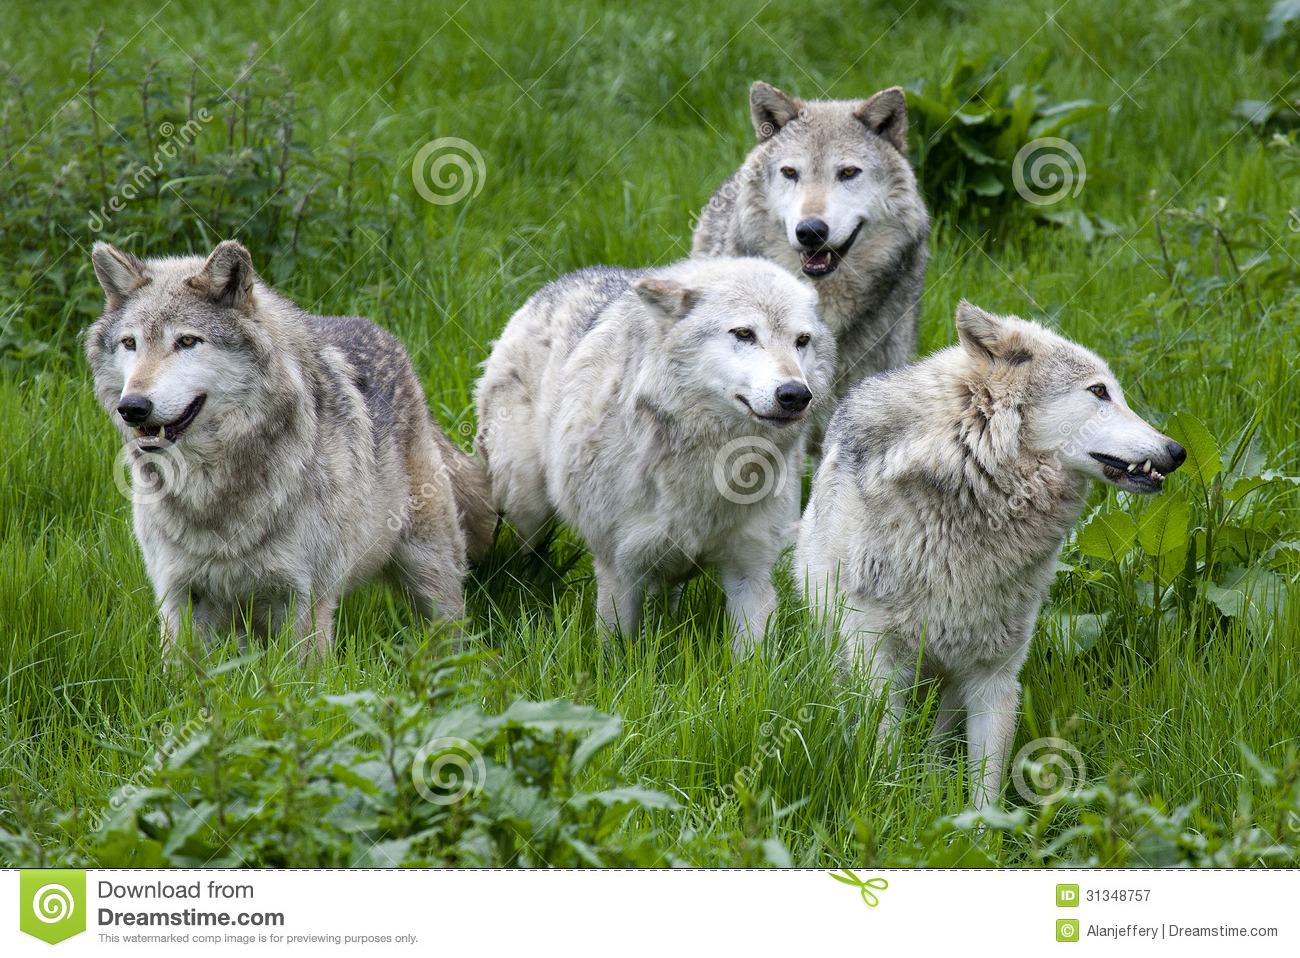 https://thumbs.dreamstime.com/z/pack-four-european-grey-wolves-playing-grass-31348757.jpg Gray